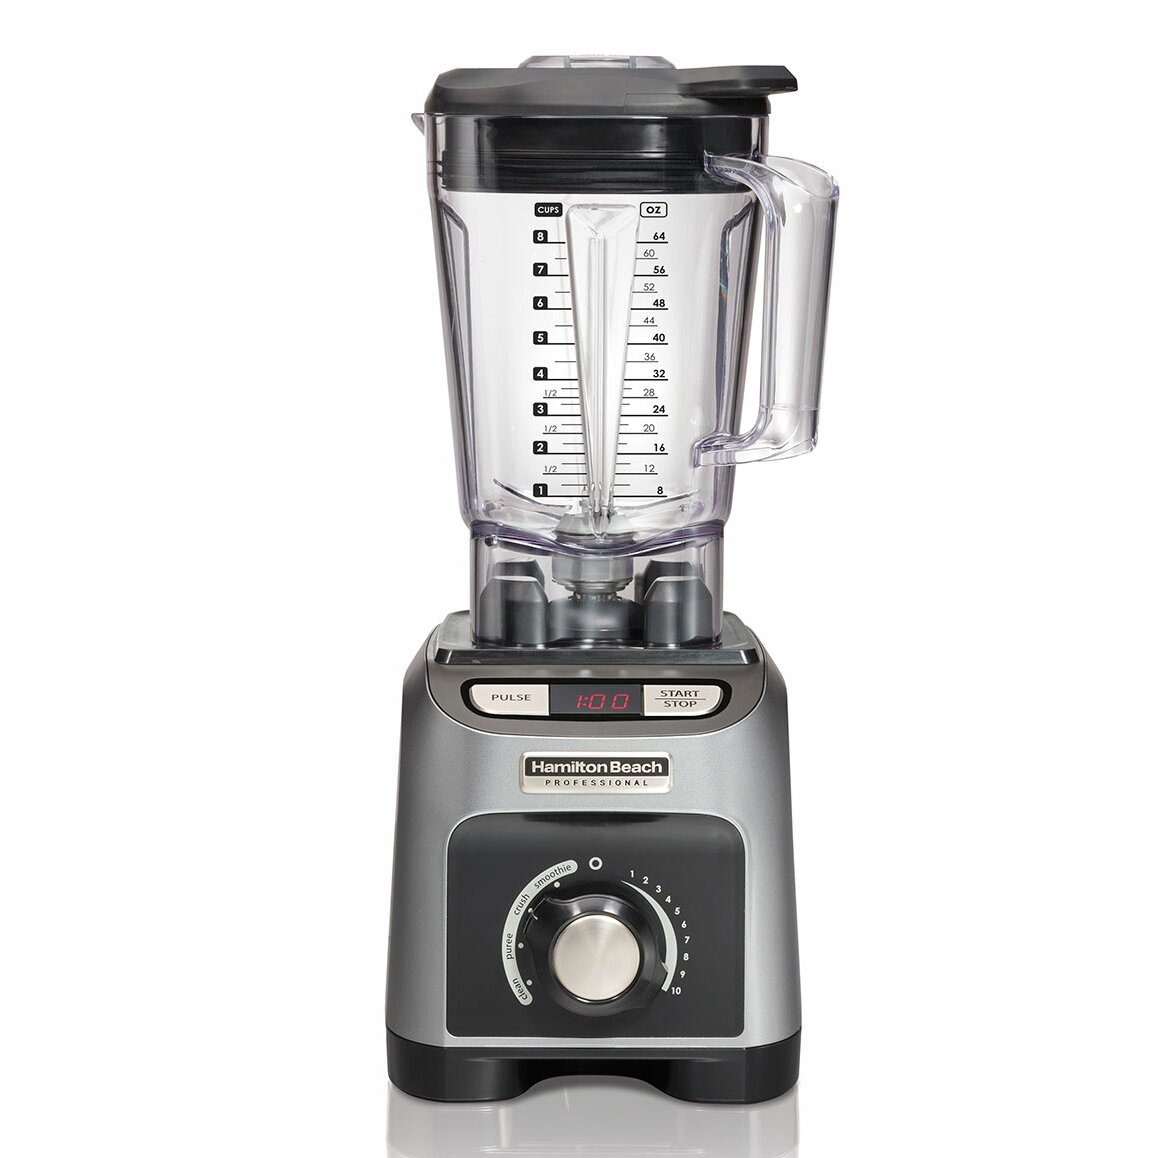 Hamilton Beach Professional Blender | Wayfair